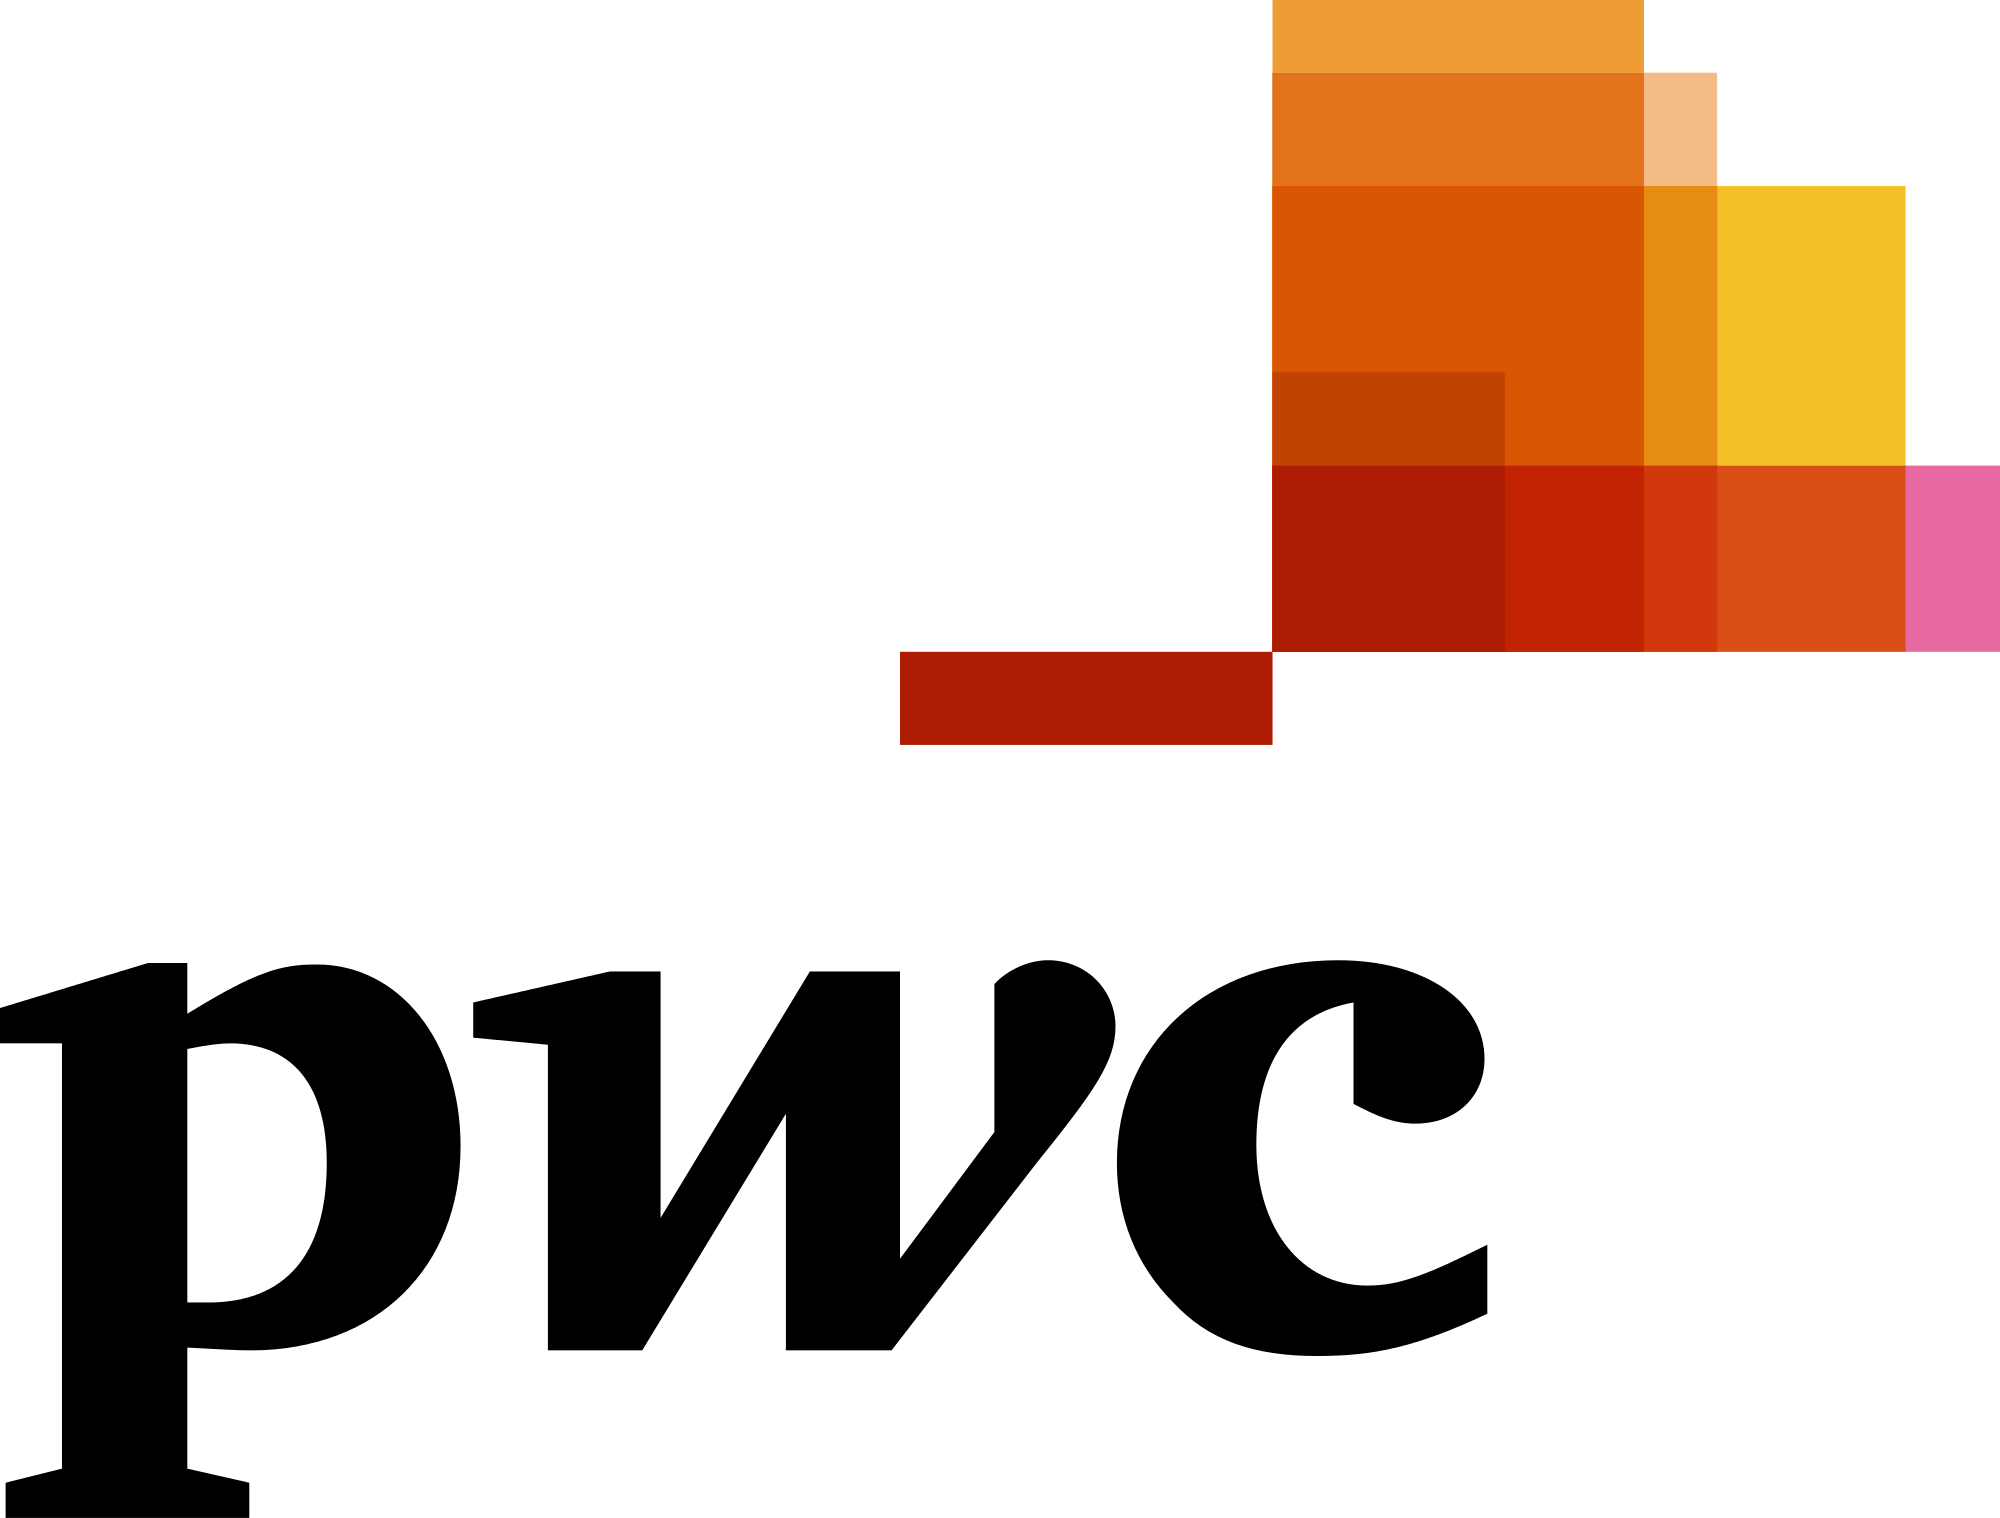 PricewaterhouseCoopers_Logo.svg